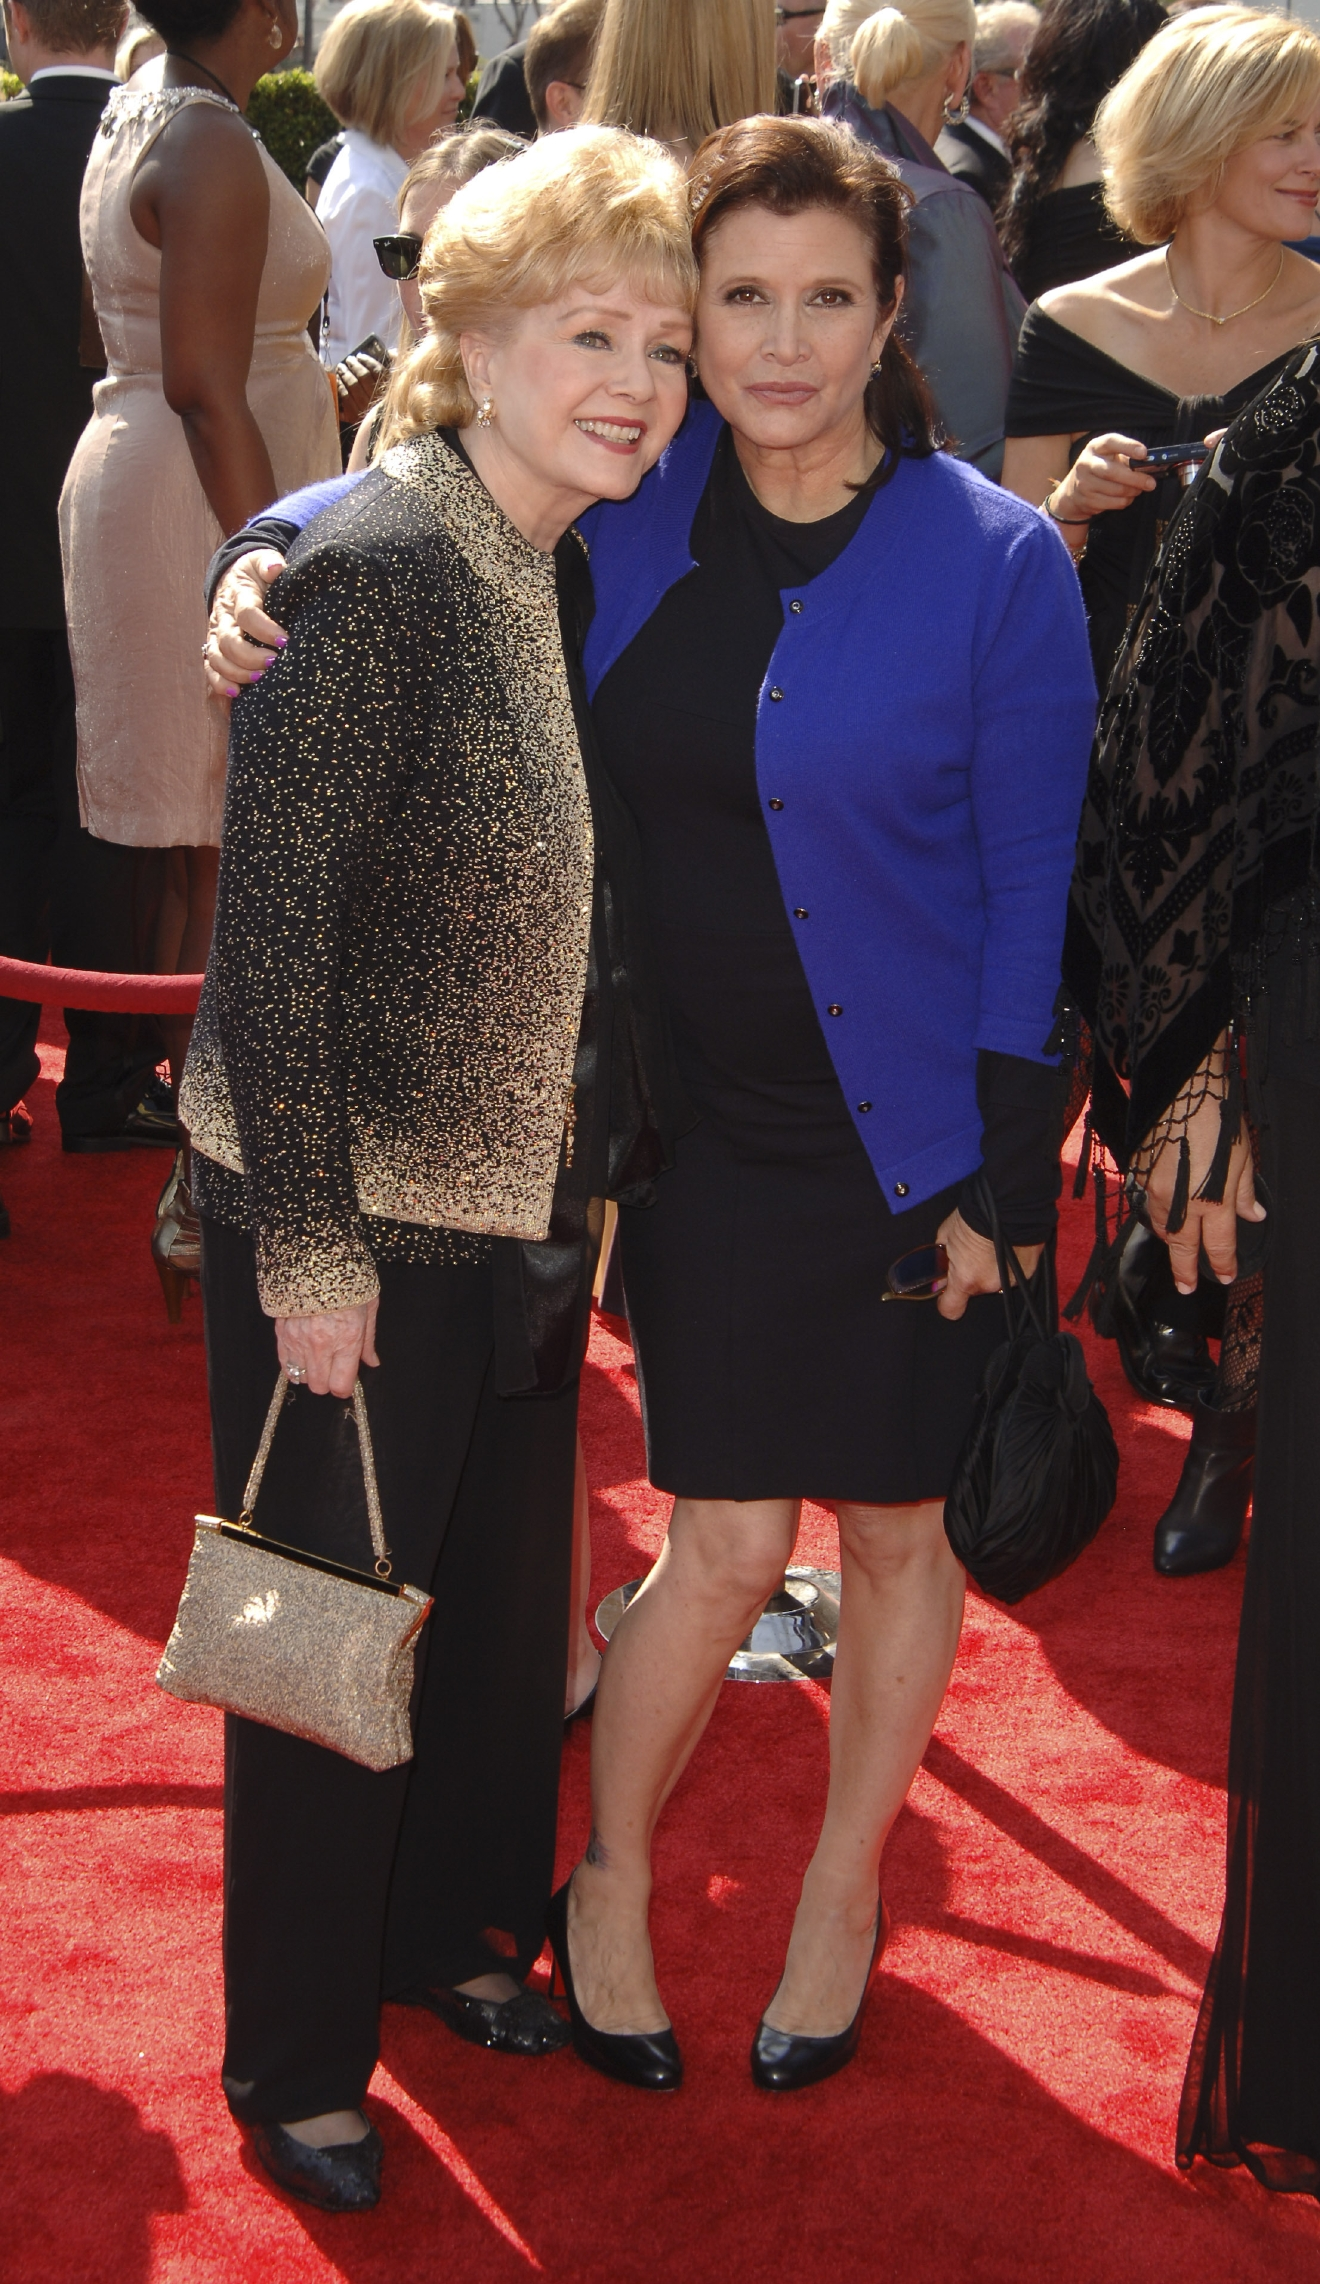 Carrie Fisher, Debbie Reynolds                  2011 Primetime Creative Arts Emmy Awards                  Held at The Nokia Theatre L.A. Live                  Los Angeles, California - 10.09.11                                    Featuring: Carrie Fisher, Debbie Reynolds                  Where: CA, United States                  When: 11 Sep 2011                  Credit: WENN